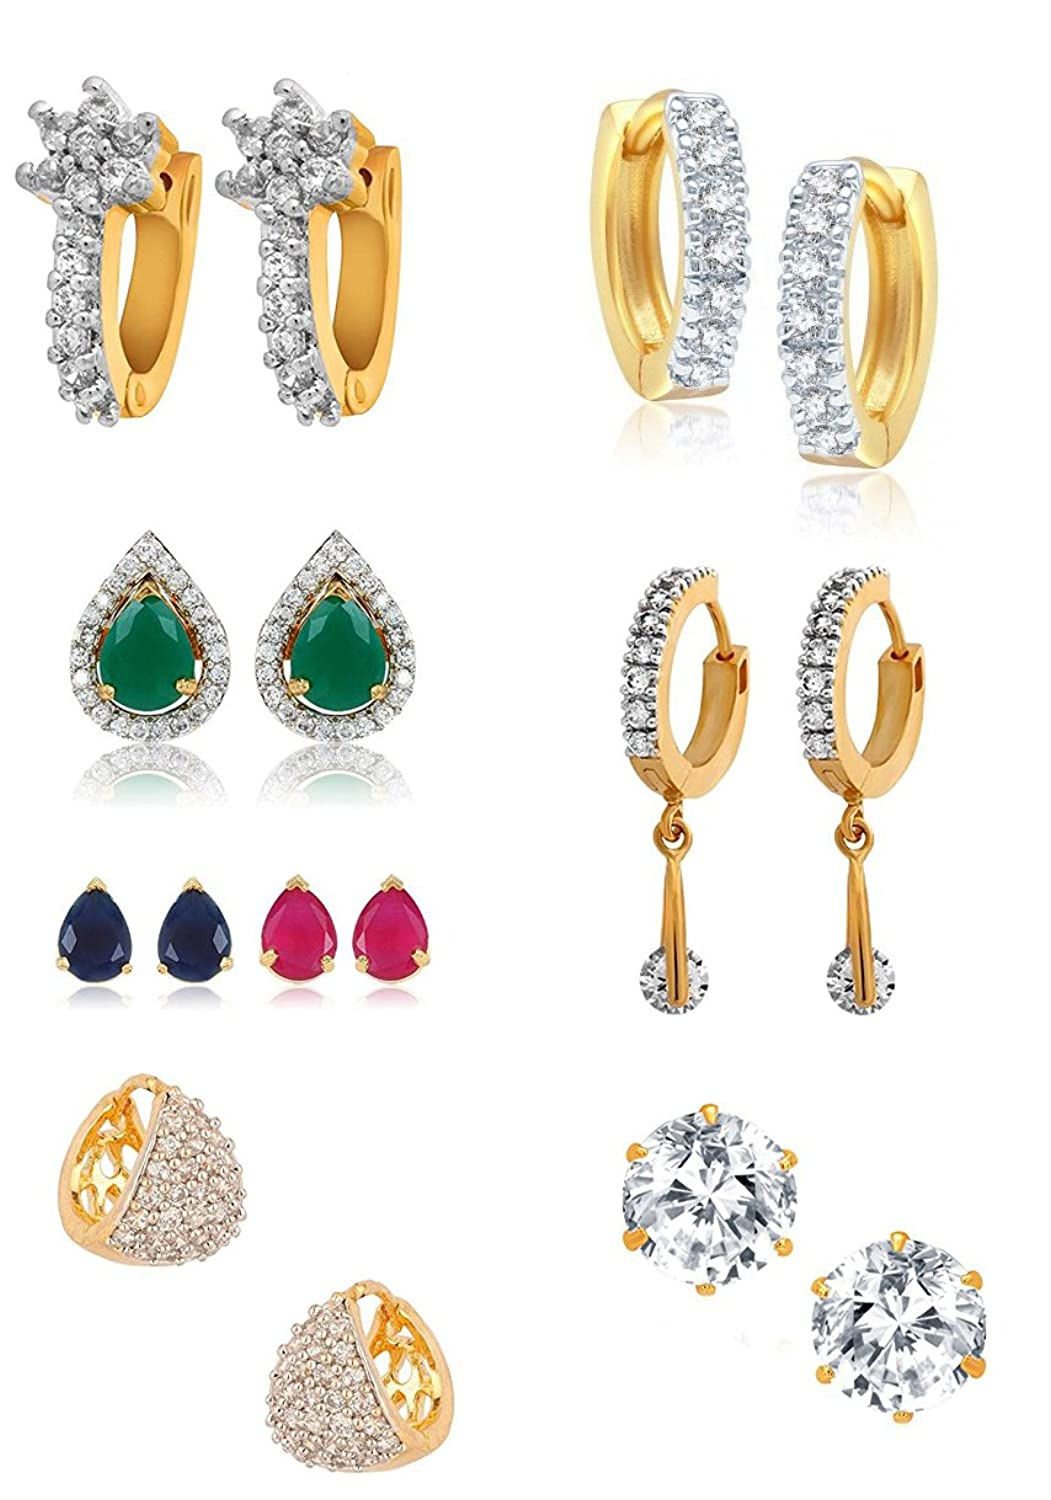 Youbellabo Of Trendy American Diamond Earrings For Women